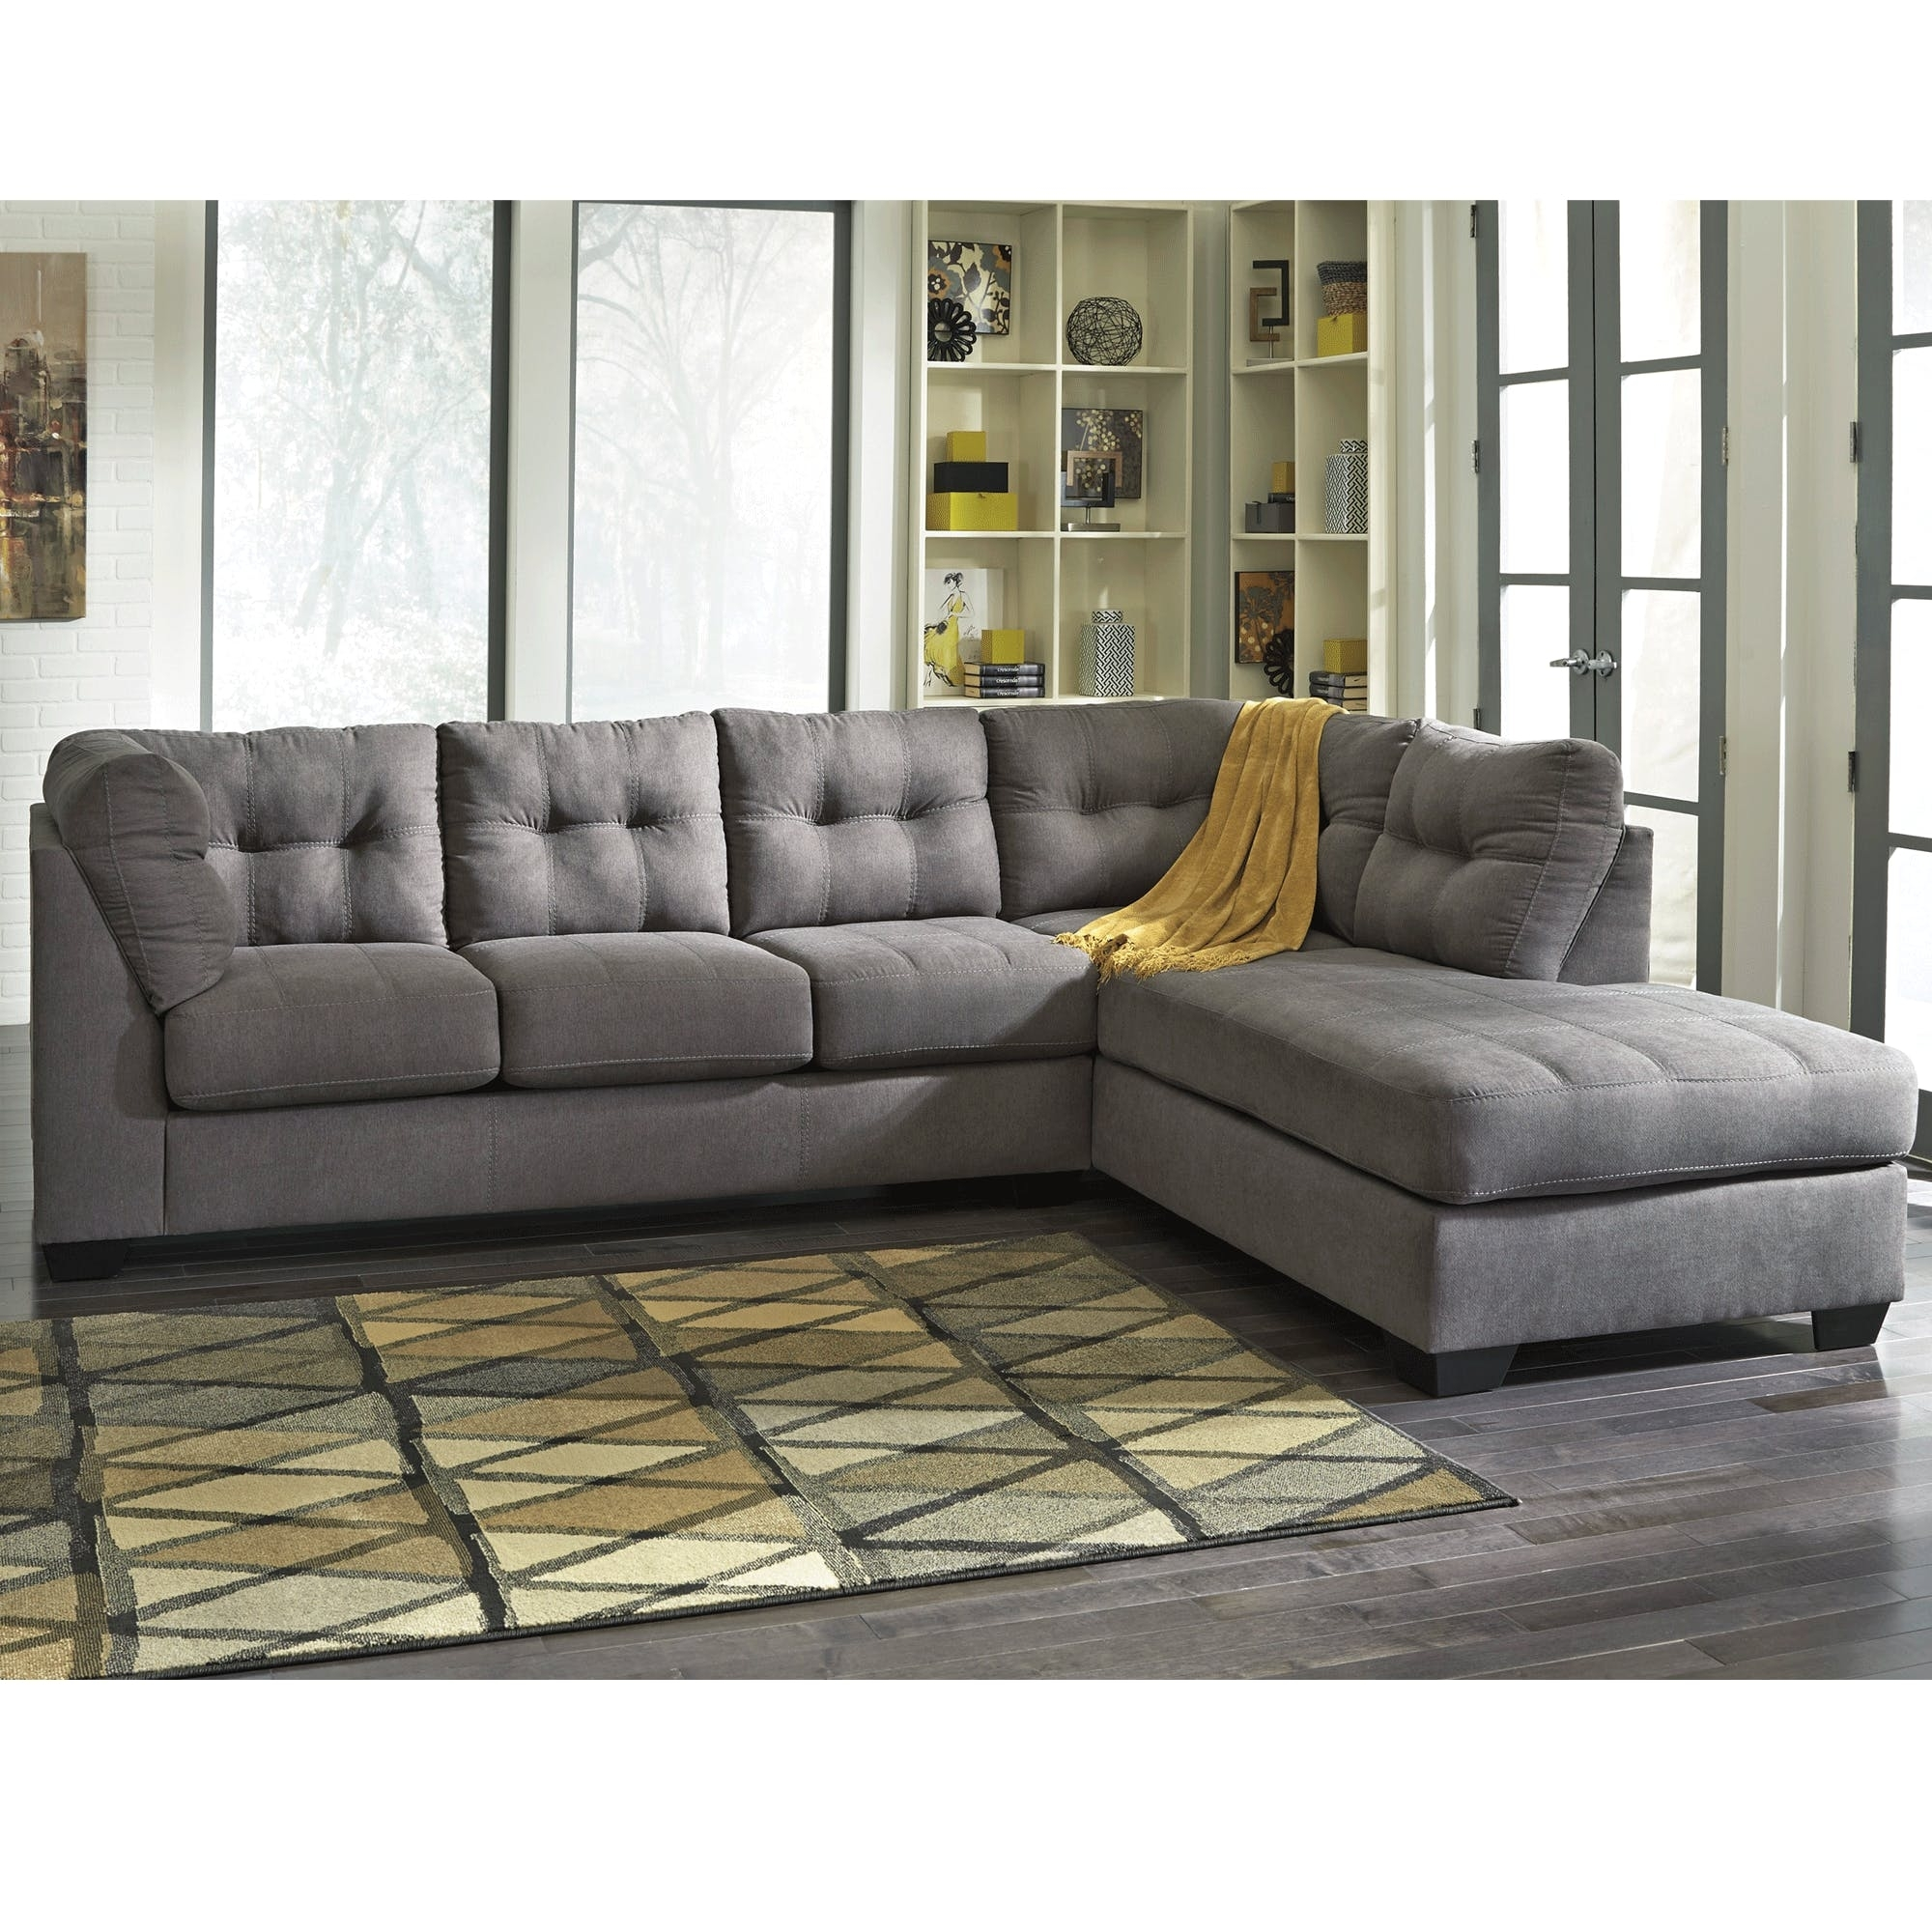 Maier Charcoal 2 Piece Sectional – Bernie & Phyl's Furniture – In Cosmos Grey 2 Piece Sectionals With Laf Chaise (Image 16 of 25)